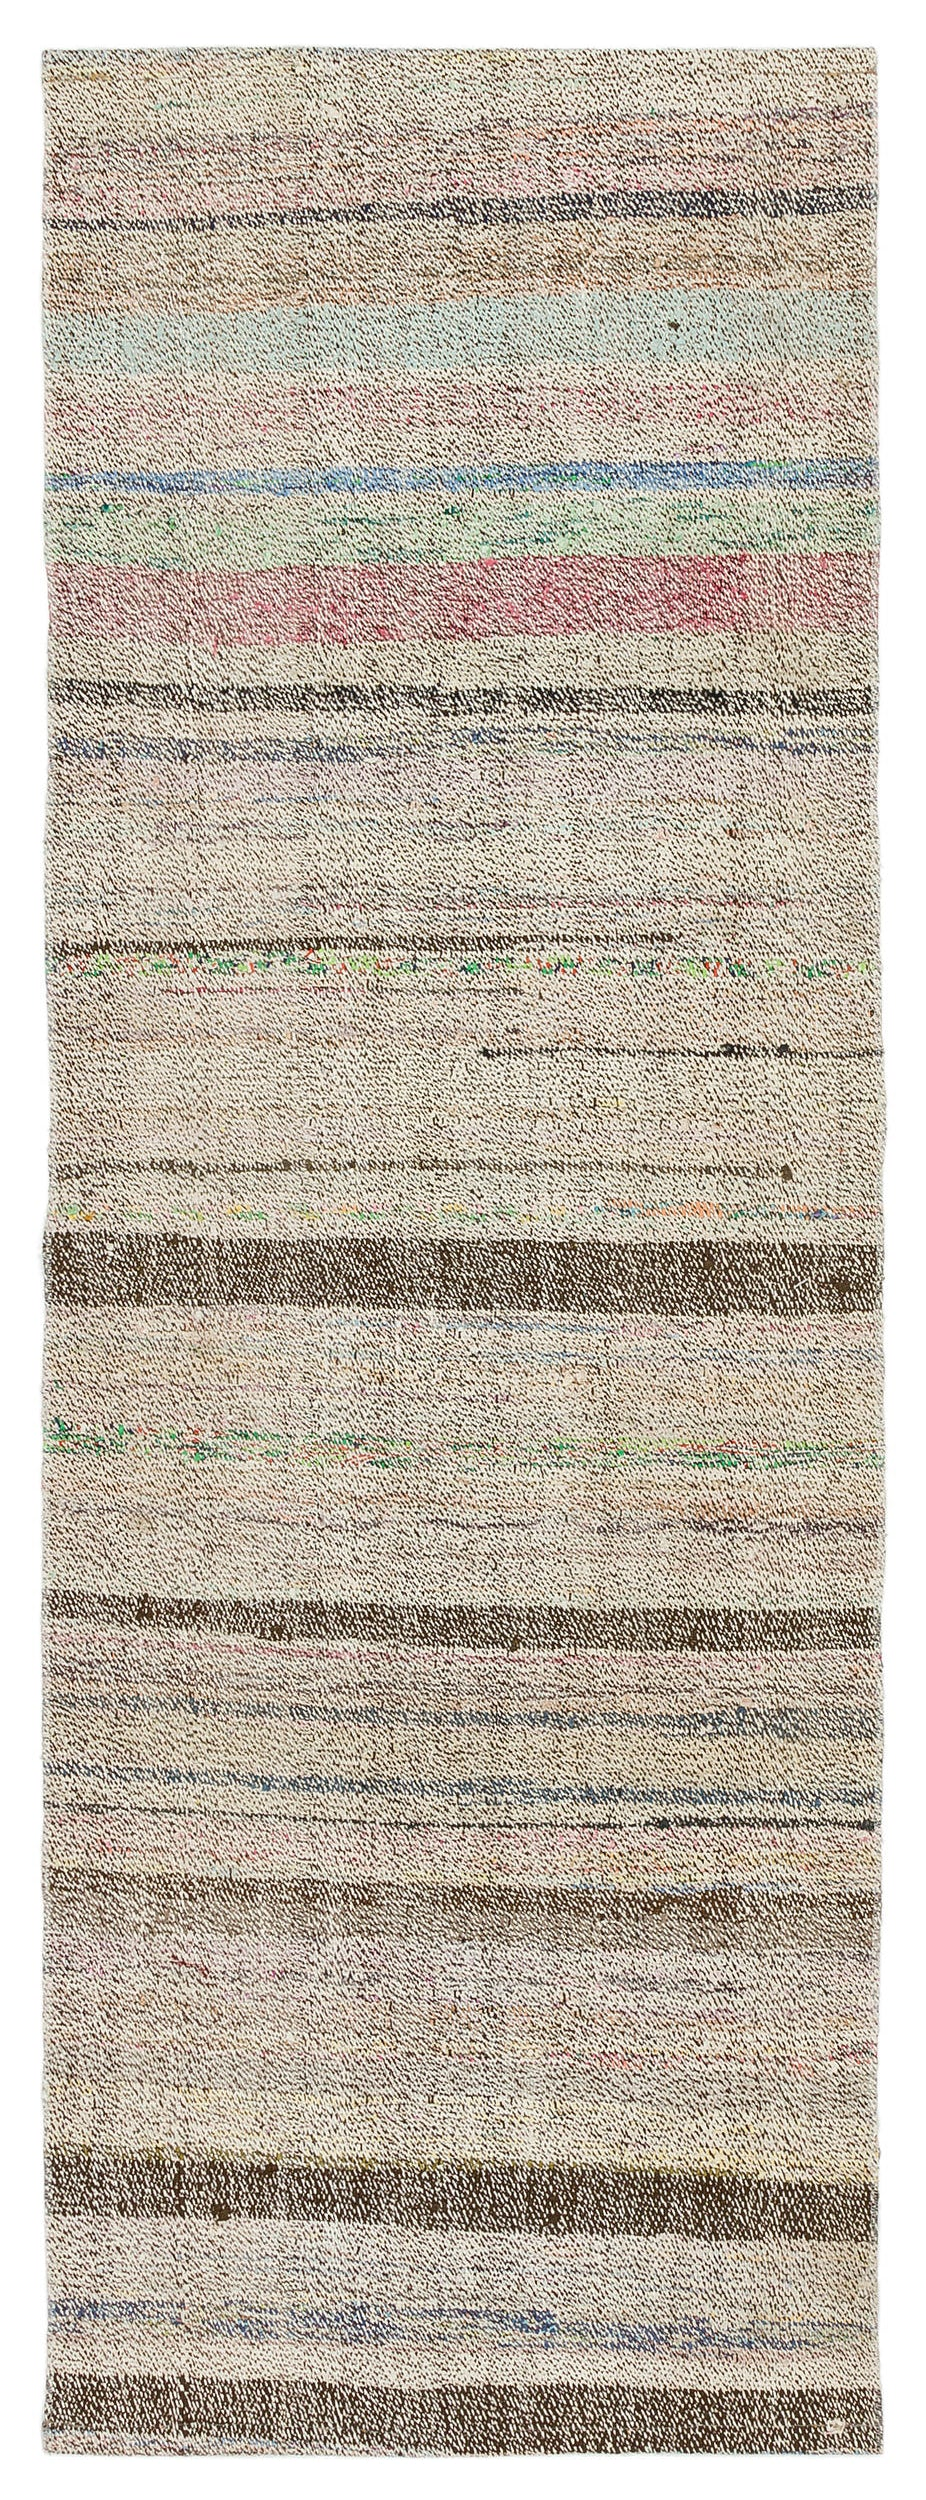 Chaput Over Dyed Kilim Rug 2'0'' x 5'9'' ft 61 x 175 cm